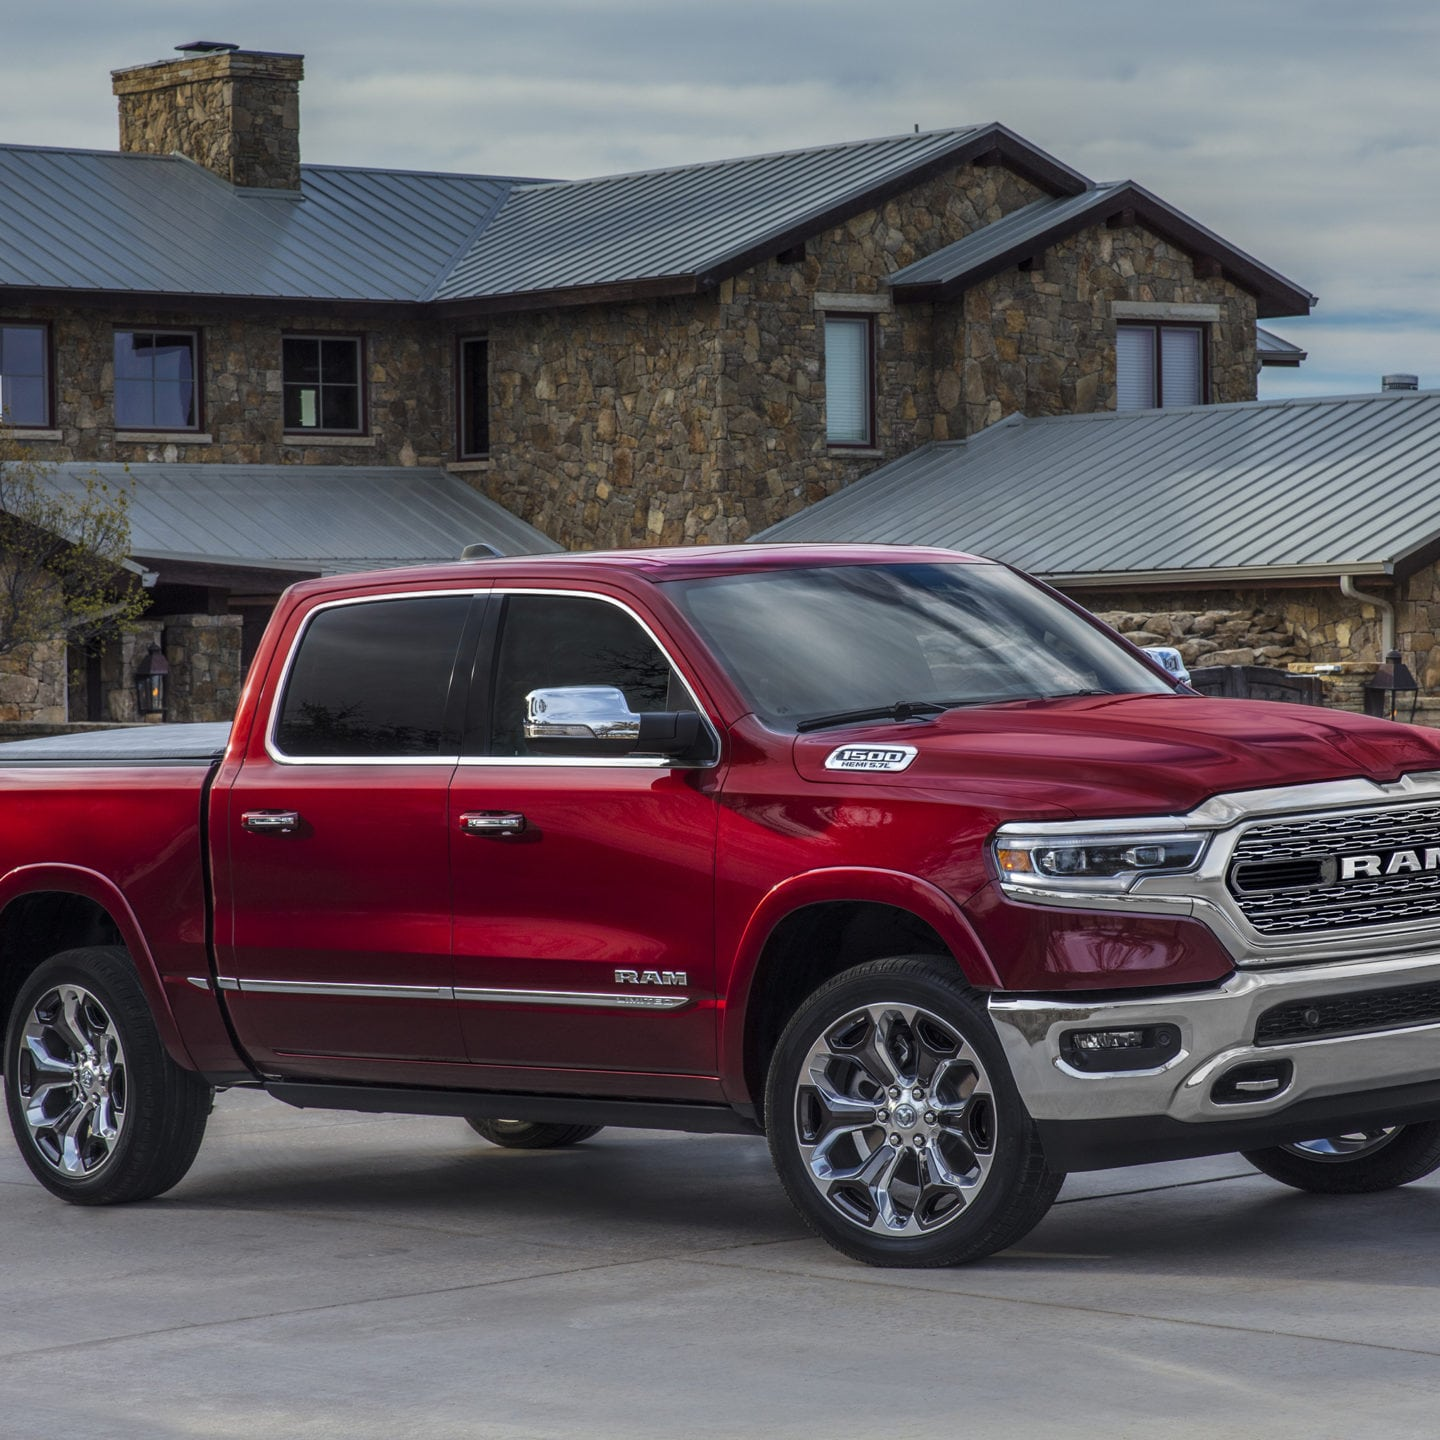 2019 Ram 1500 pickup growls into Detroit for NAIAS 2018 debut